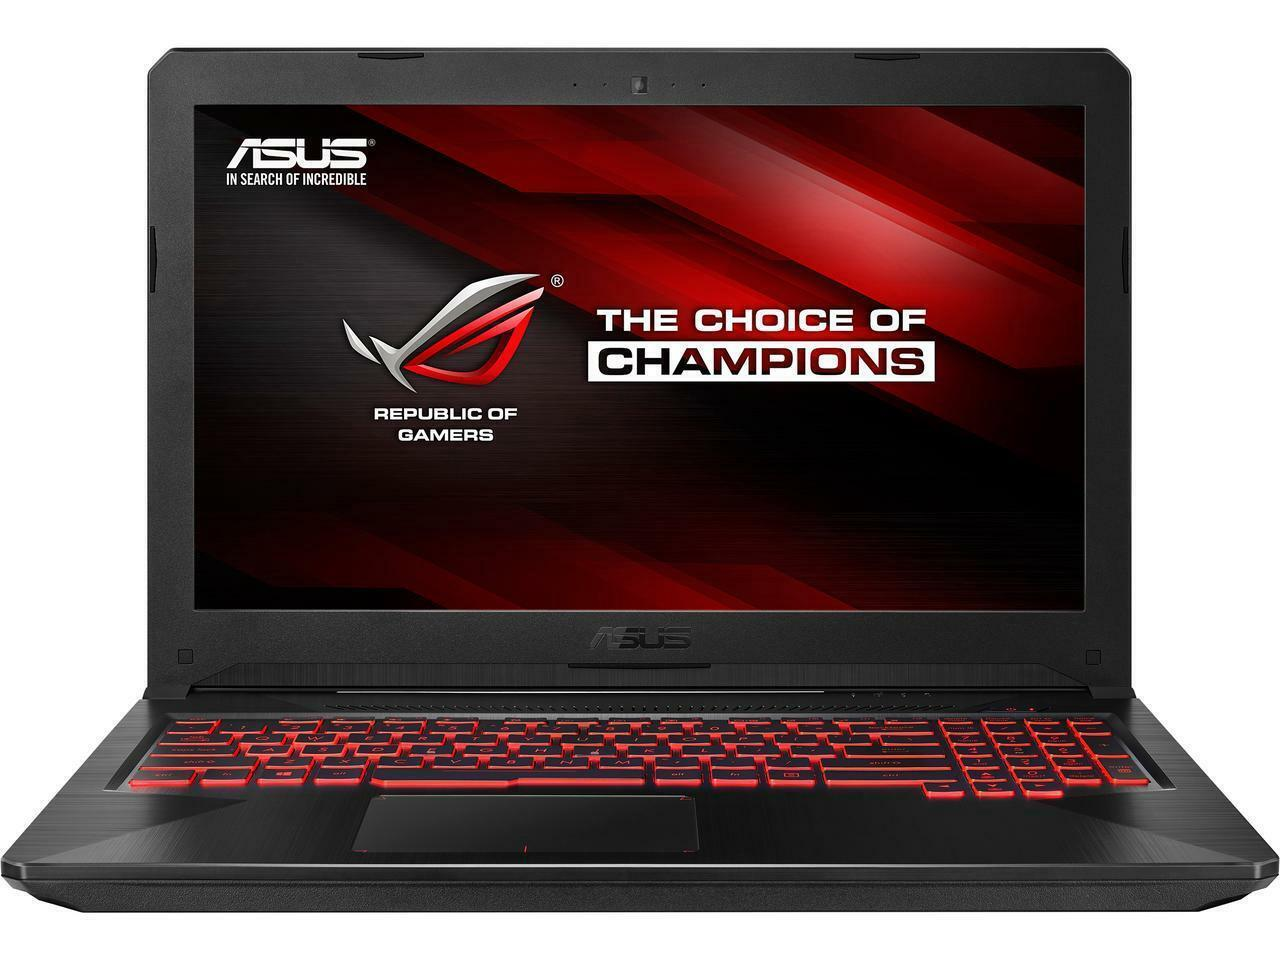 """NEW ASUS FX504GD-WH51 TUF Gaming Laptop NOtebook 15.6"""" IPS i"""